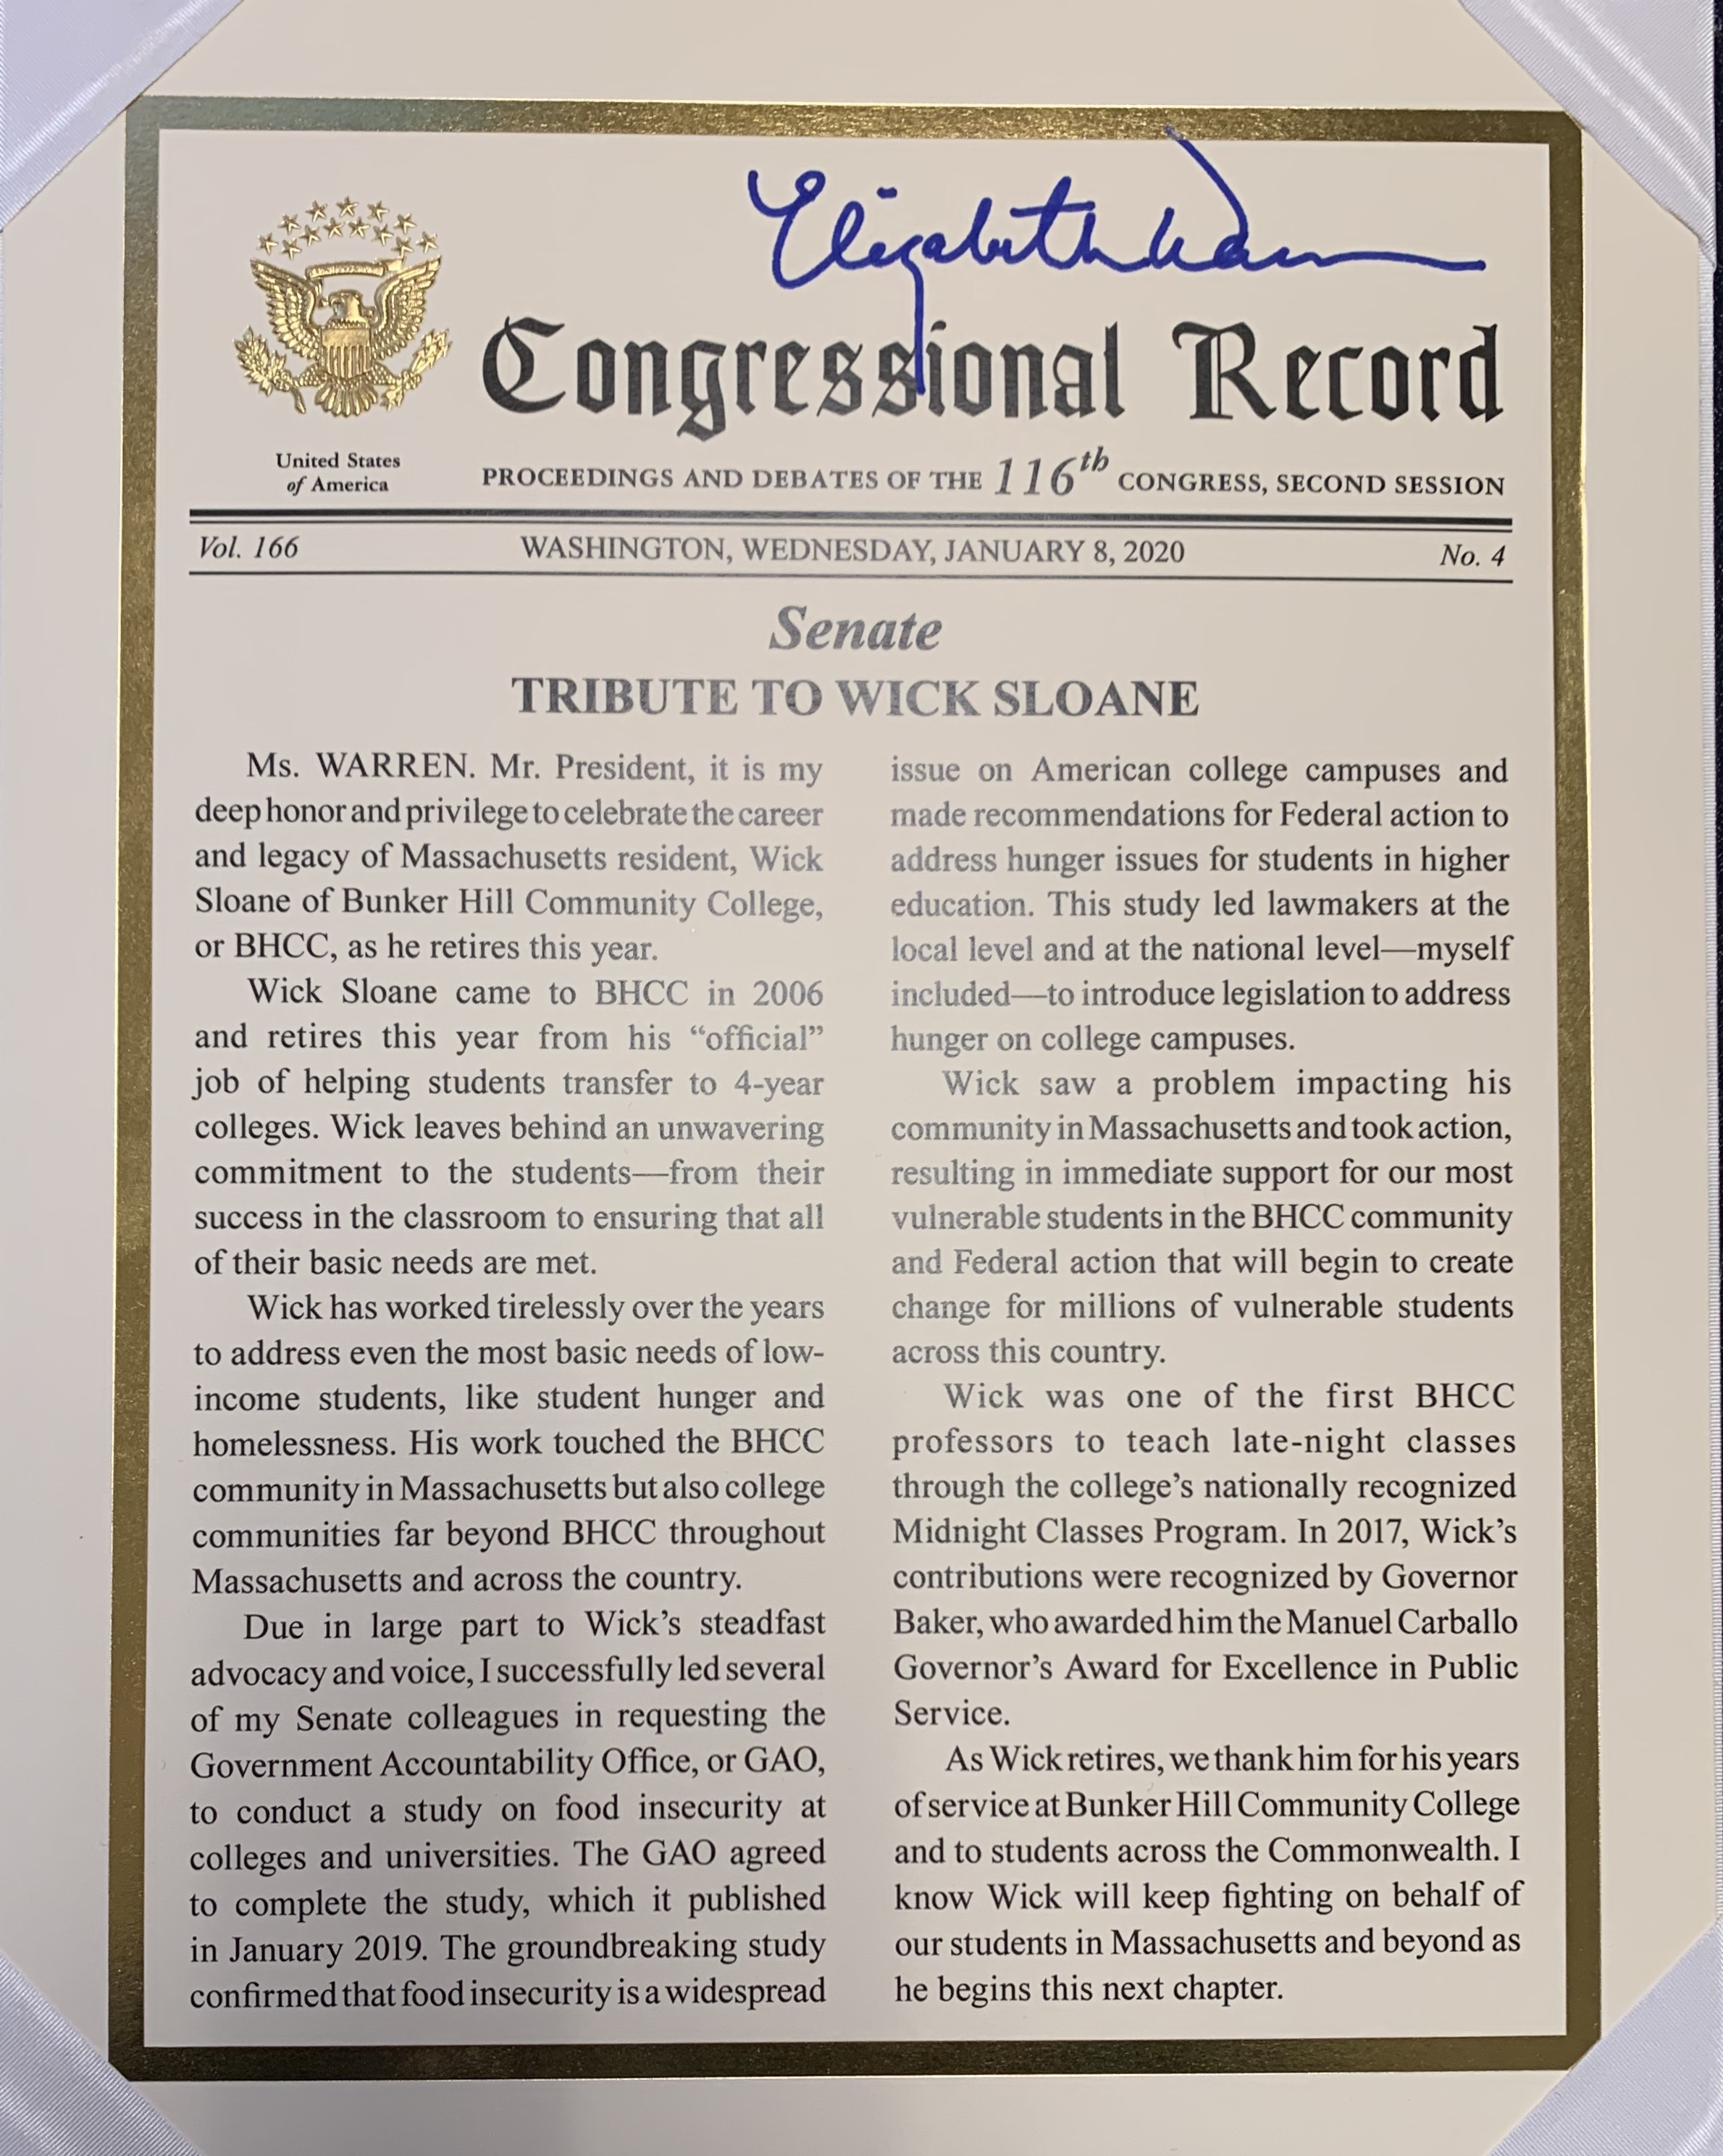 Congressional record From Senate Warren , a tribute to Wick Sloane